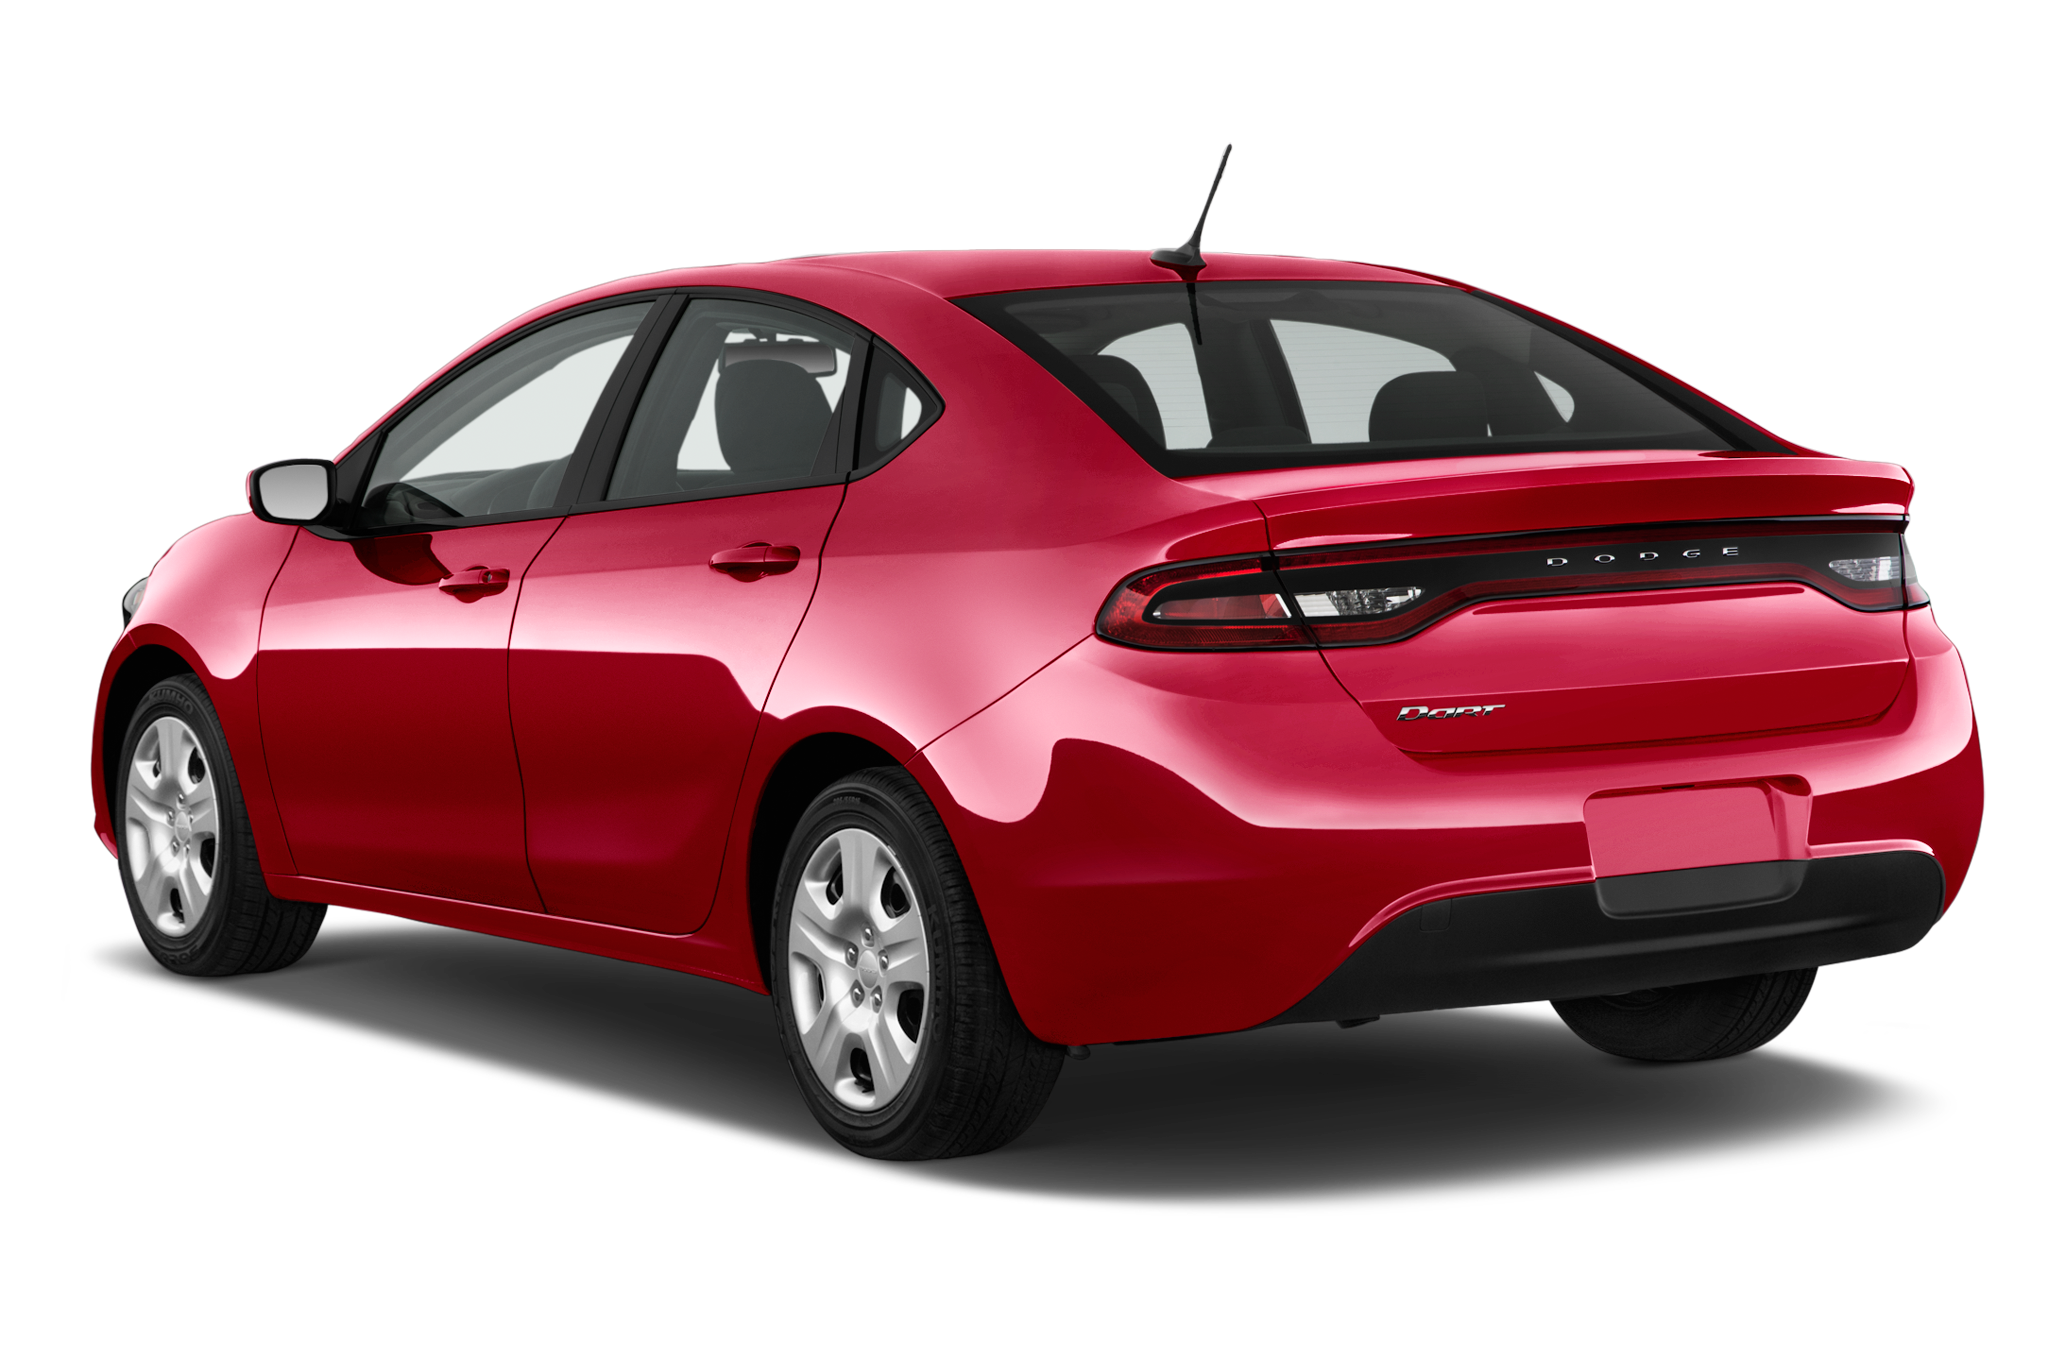 dodge dart lineup cut to three models in final sales year. Black Bedroom Furniture Sets. Home Design Ideas